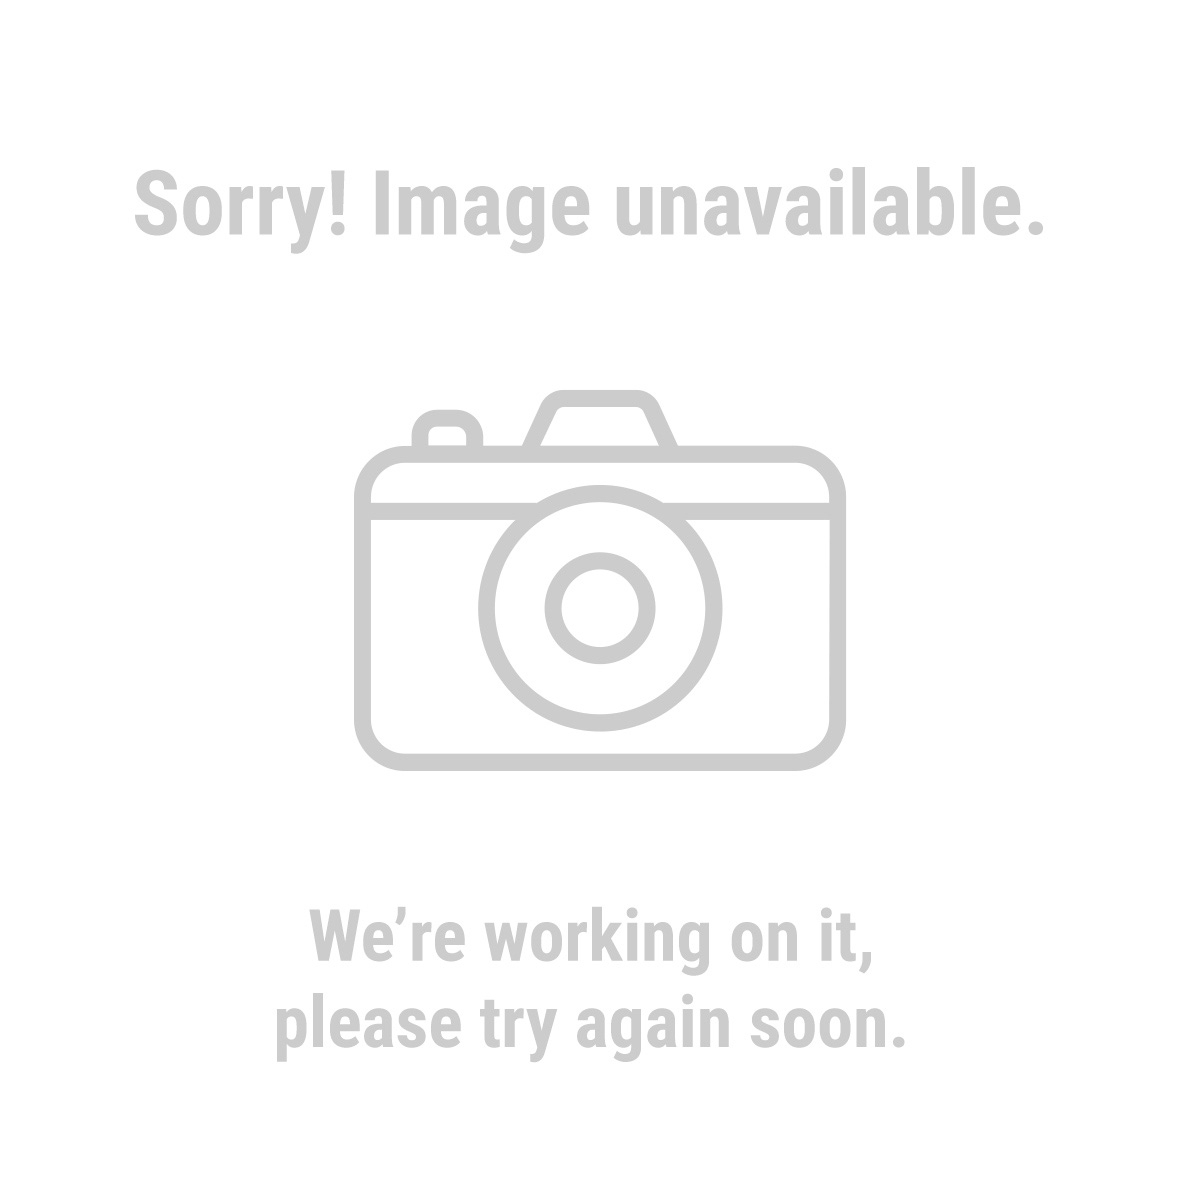 Pittsburgh Automotive 66481 20 Ton Low Profile Hydraulic Bottle Jack